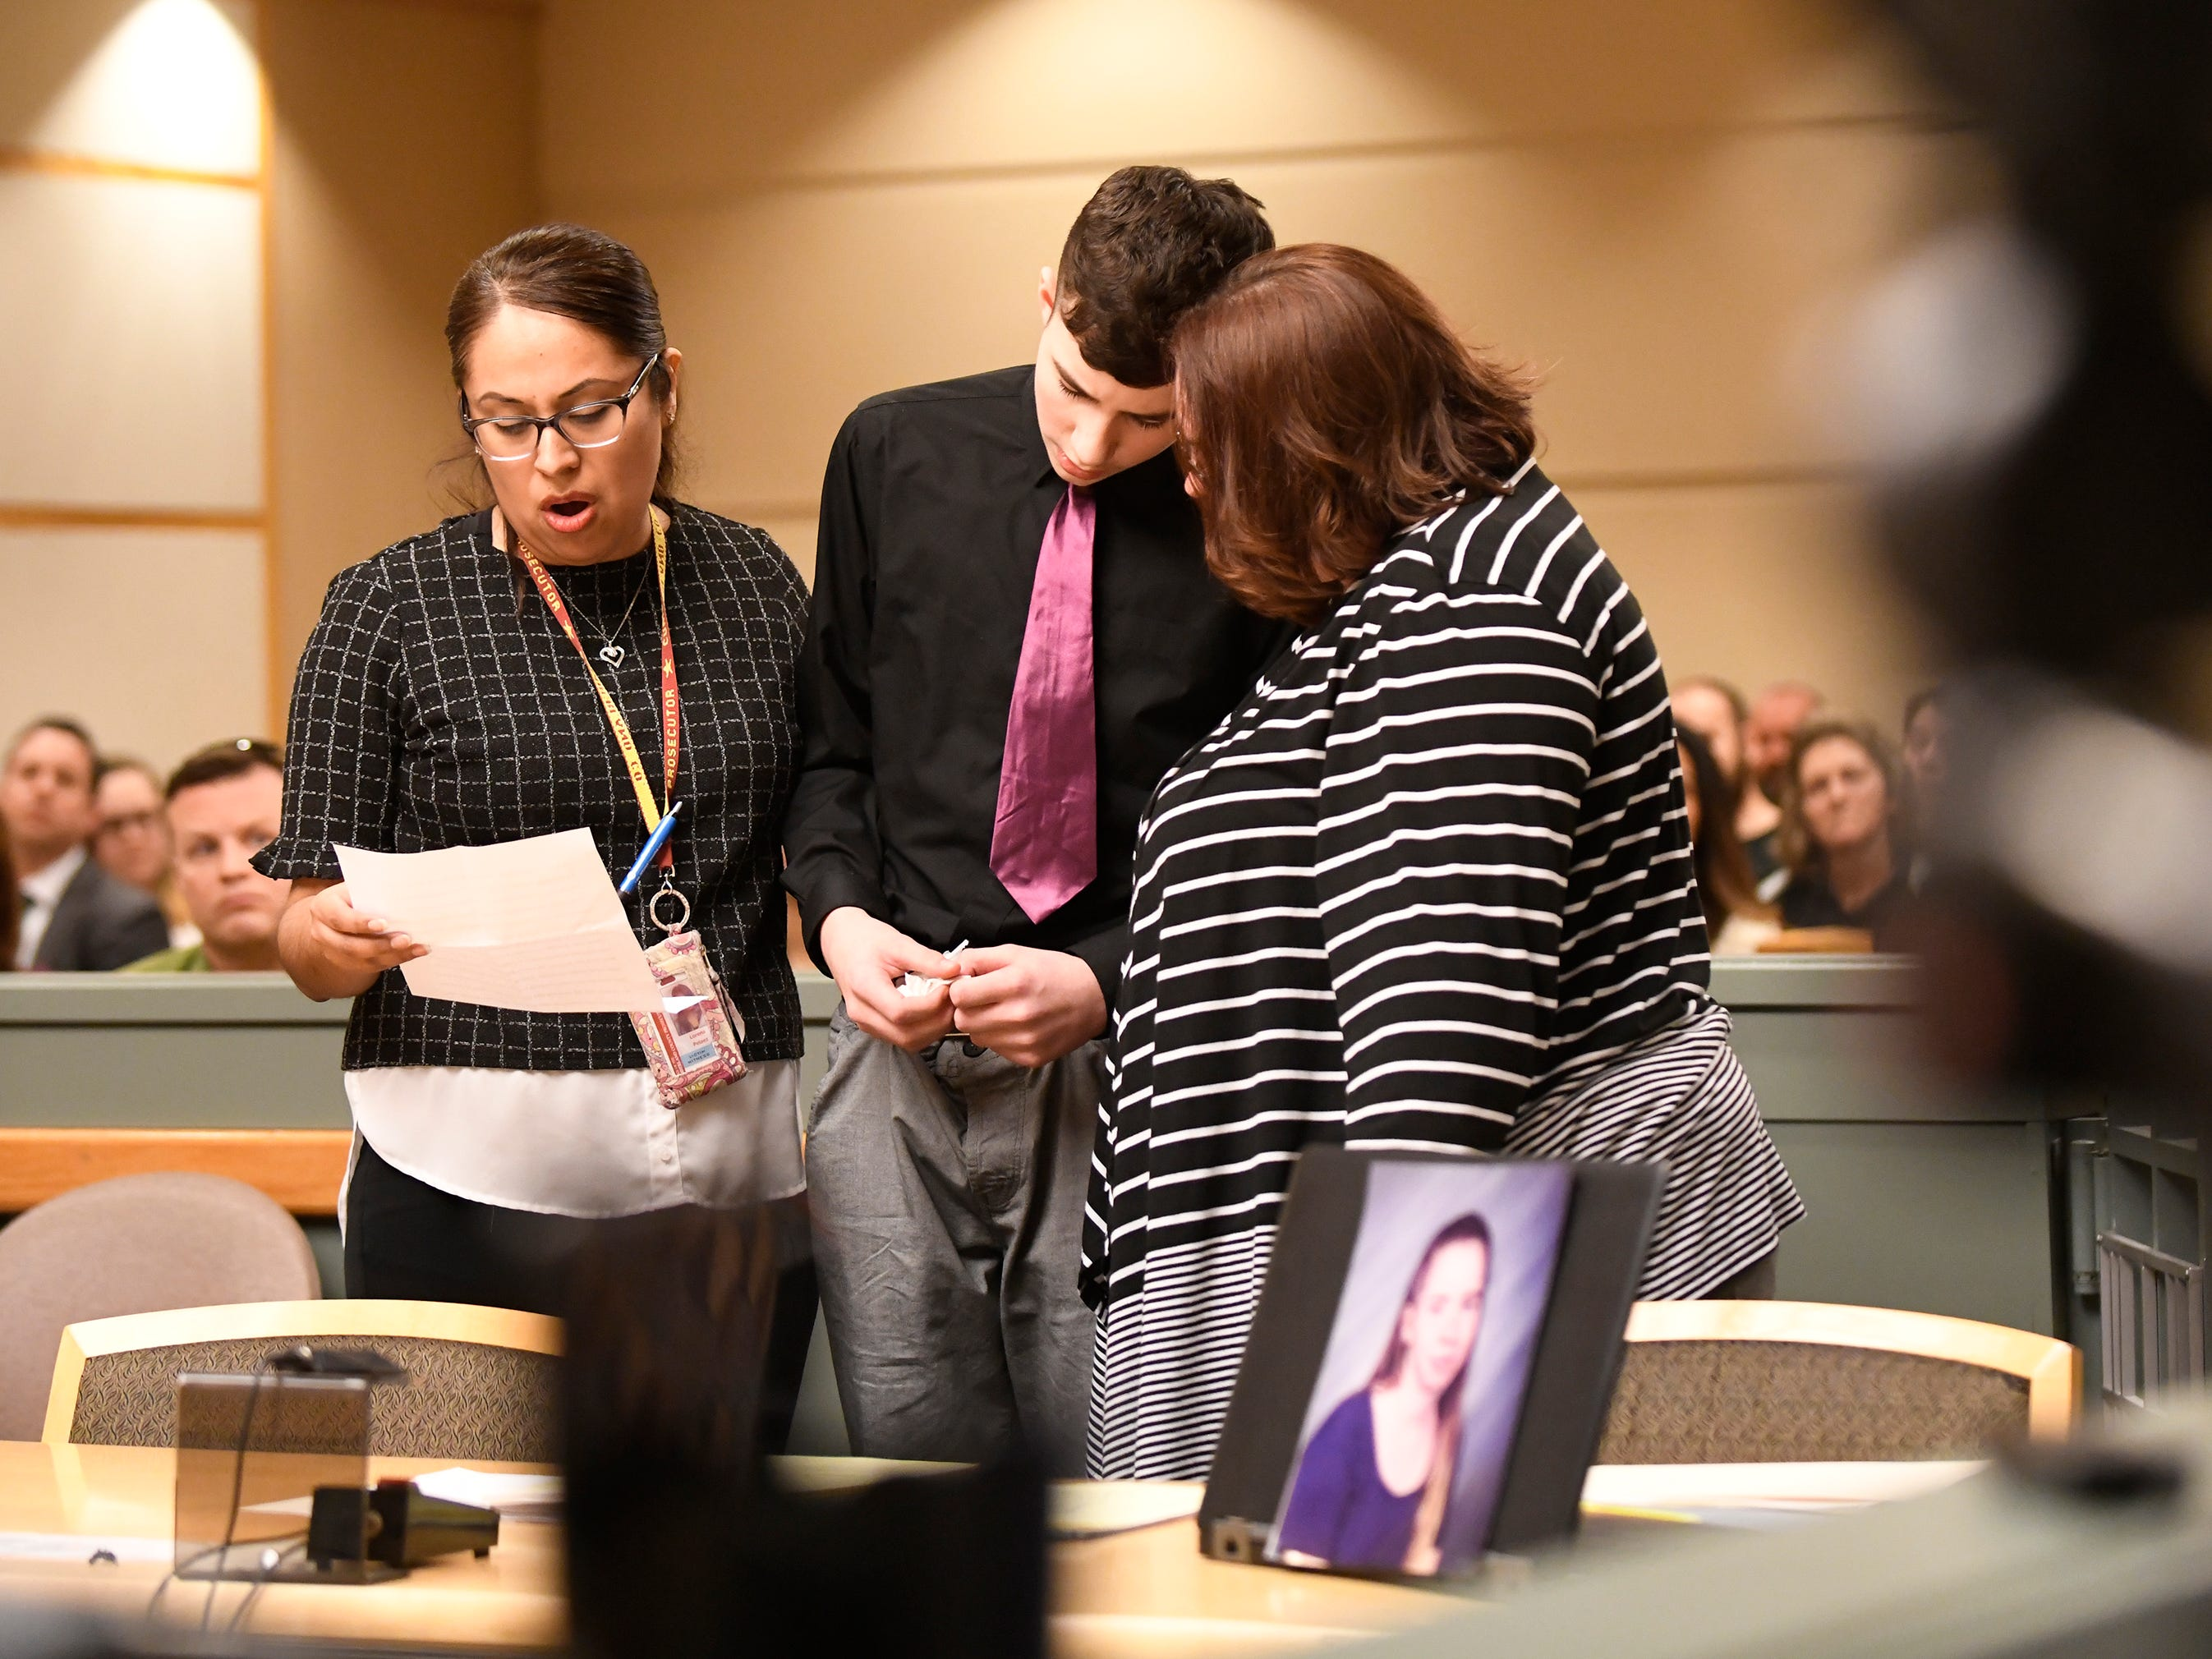 Director of Victim-Witness Advocacy Lorena Palaez reads a letter written by Jeremiah E. Monell's son. The son, who is named for his father, is flanked by Palaez, left, and his aunt, Thelma Monell, right, in Cumberland County Superior Court on Friday, Mar. 15, 2019. Monell, who stabbed and slashed his estranged wife to death, was sentenced to spend the rest of his life in a state prison.